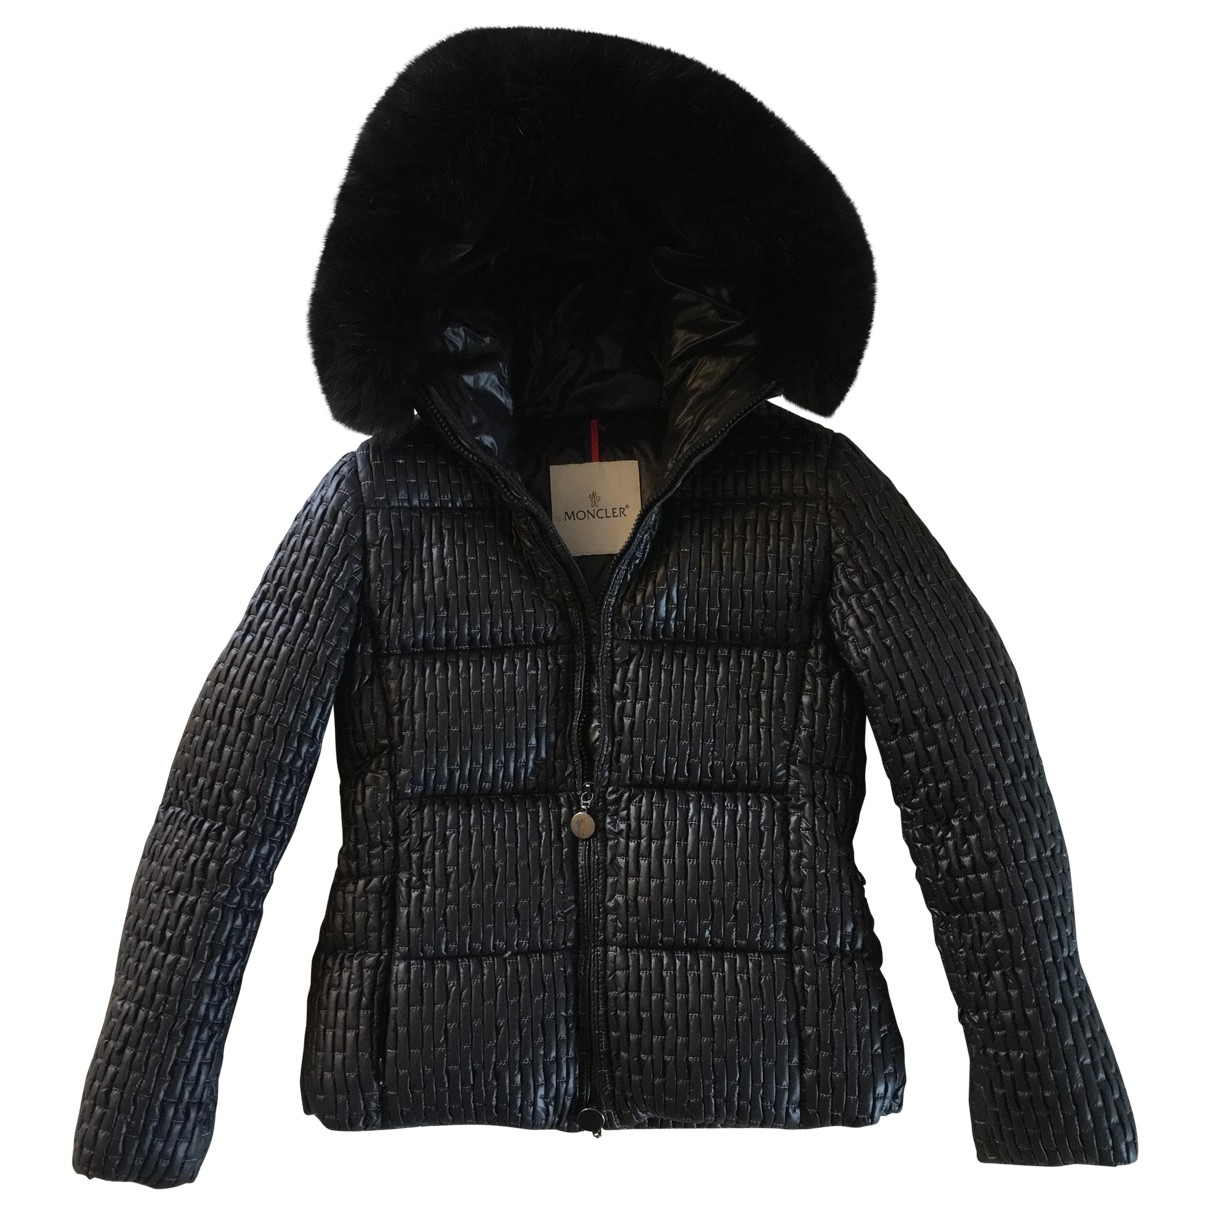 Moncler \N Black Outfits for Kids 10 years - up to 142cm FR